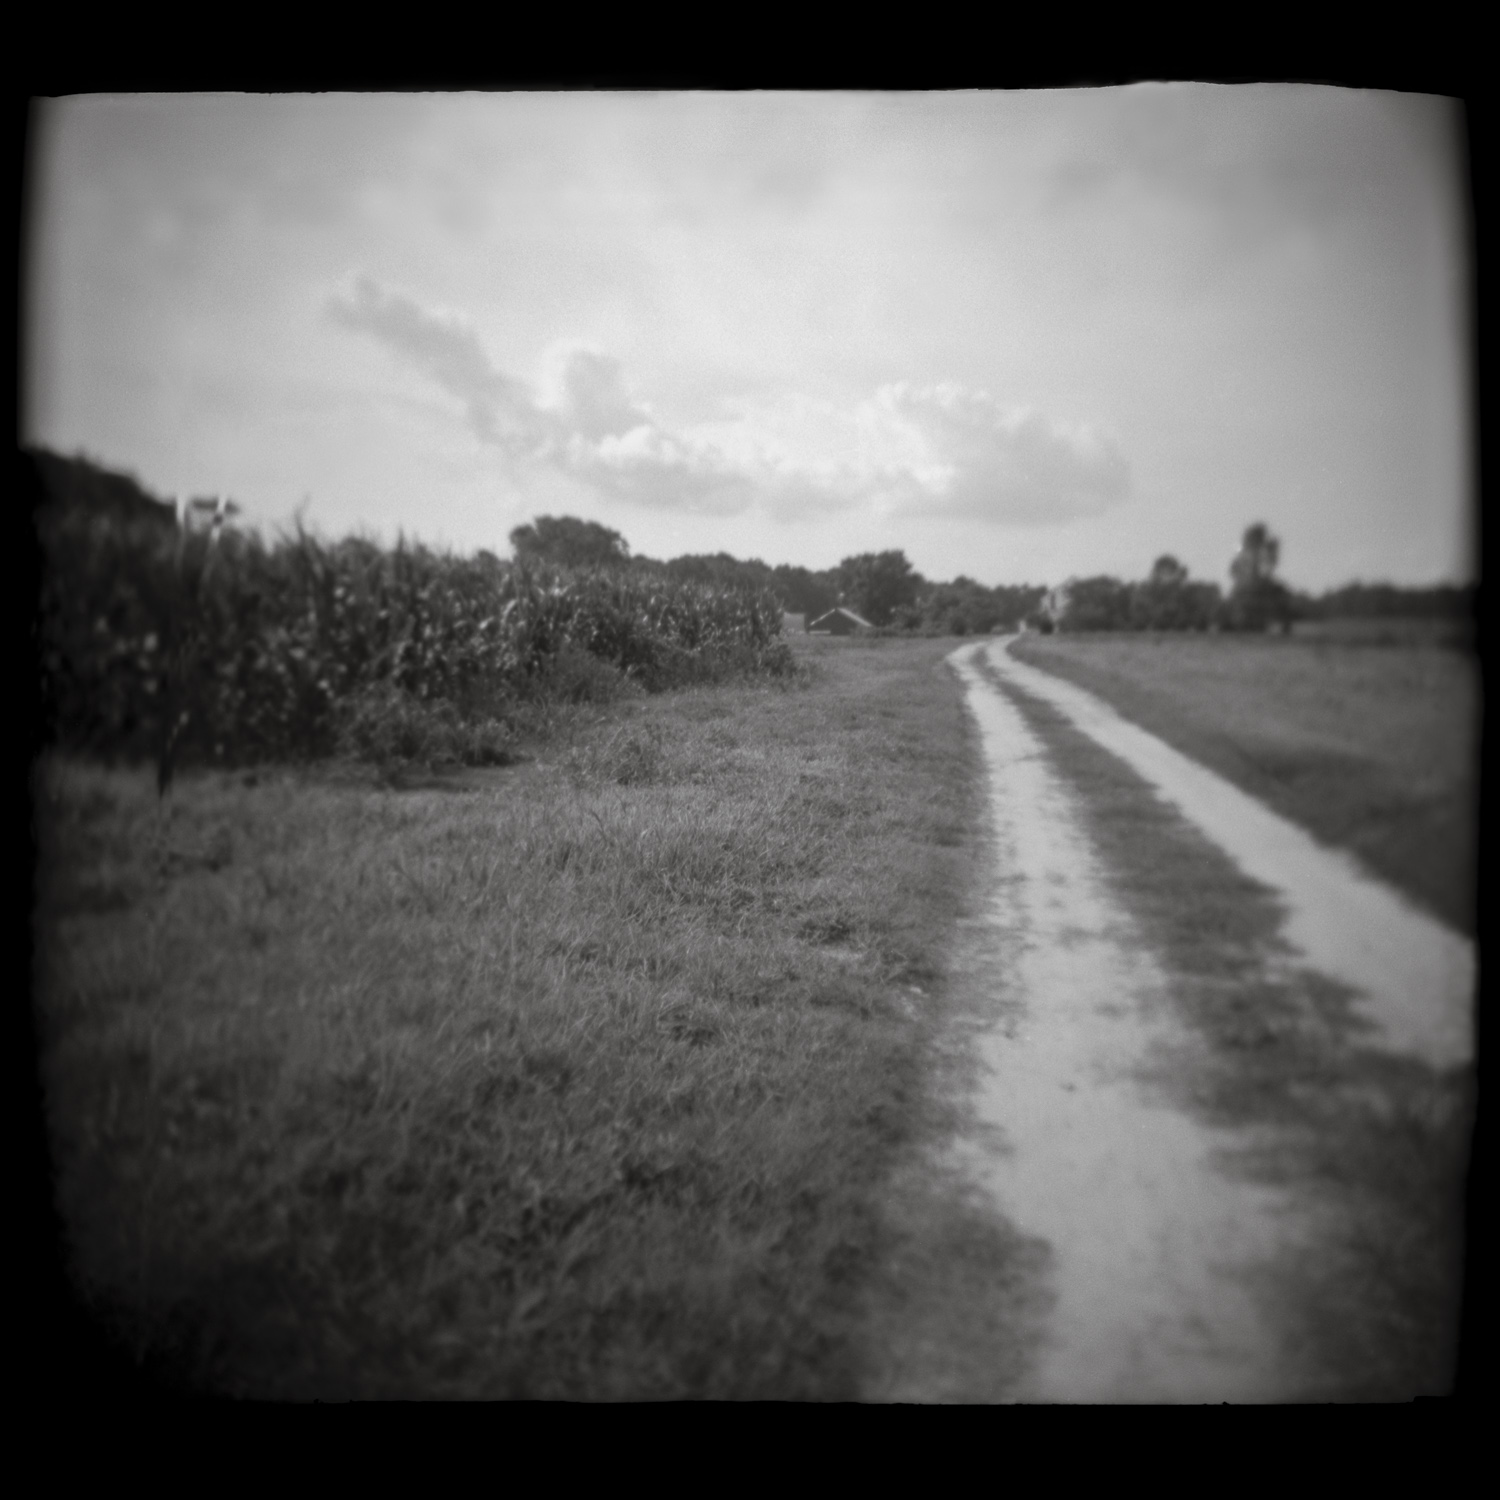 F156 N1 HOLGA Maryland farm road DUSTED CLEAN EDGES SQUARE final H40 S45 B65.jpg